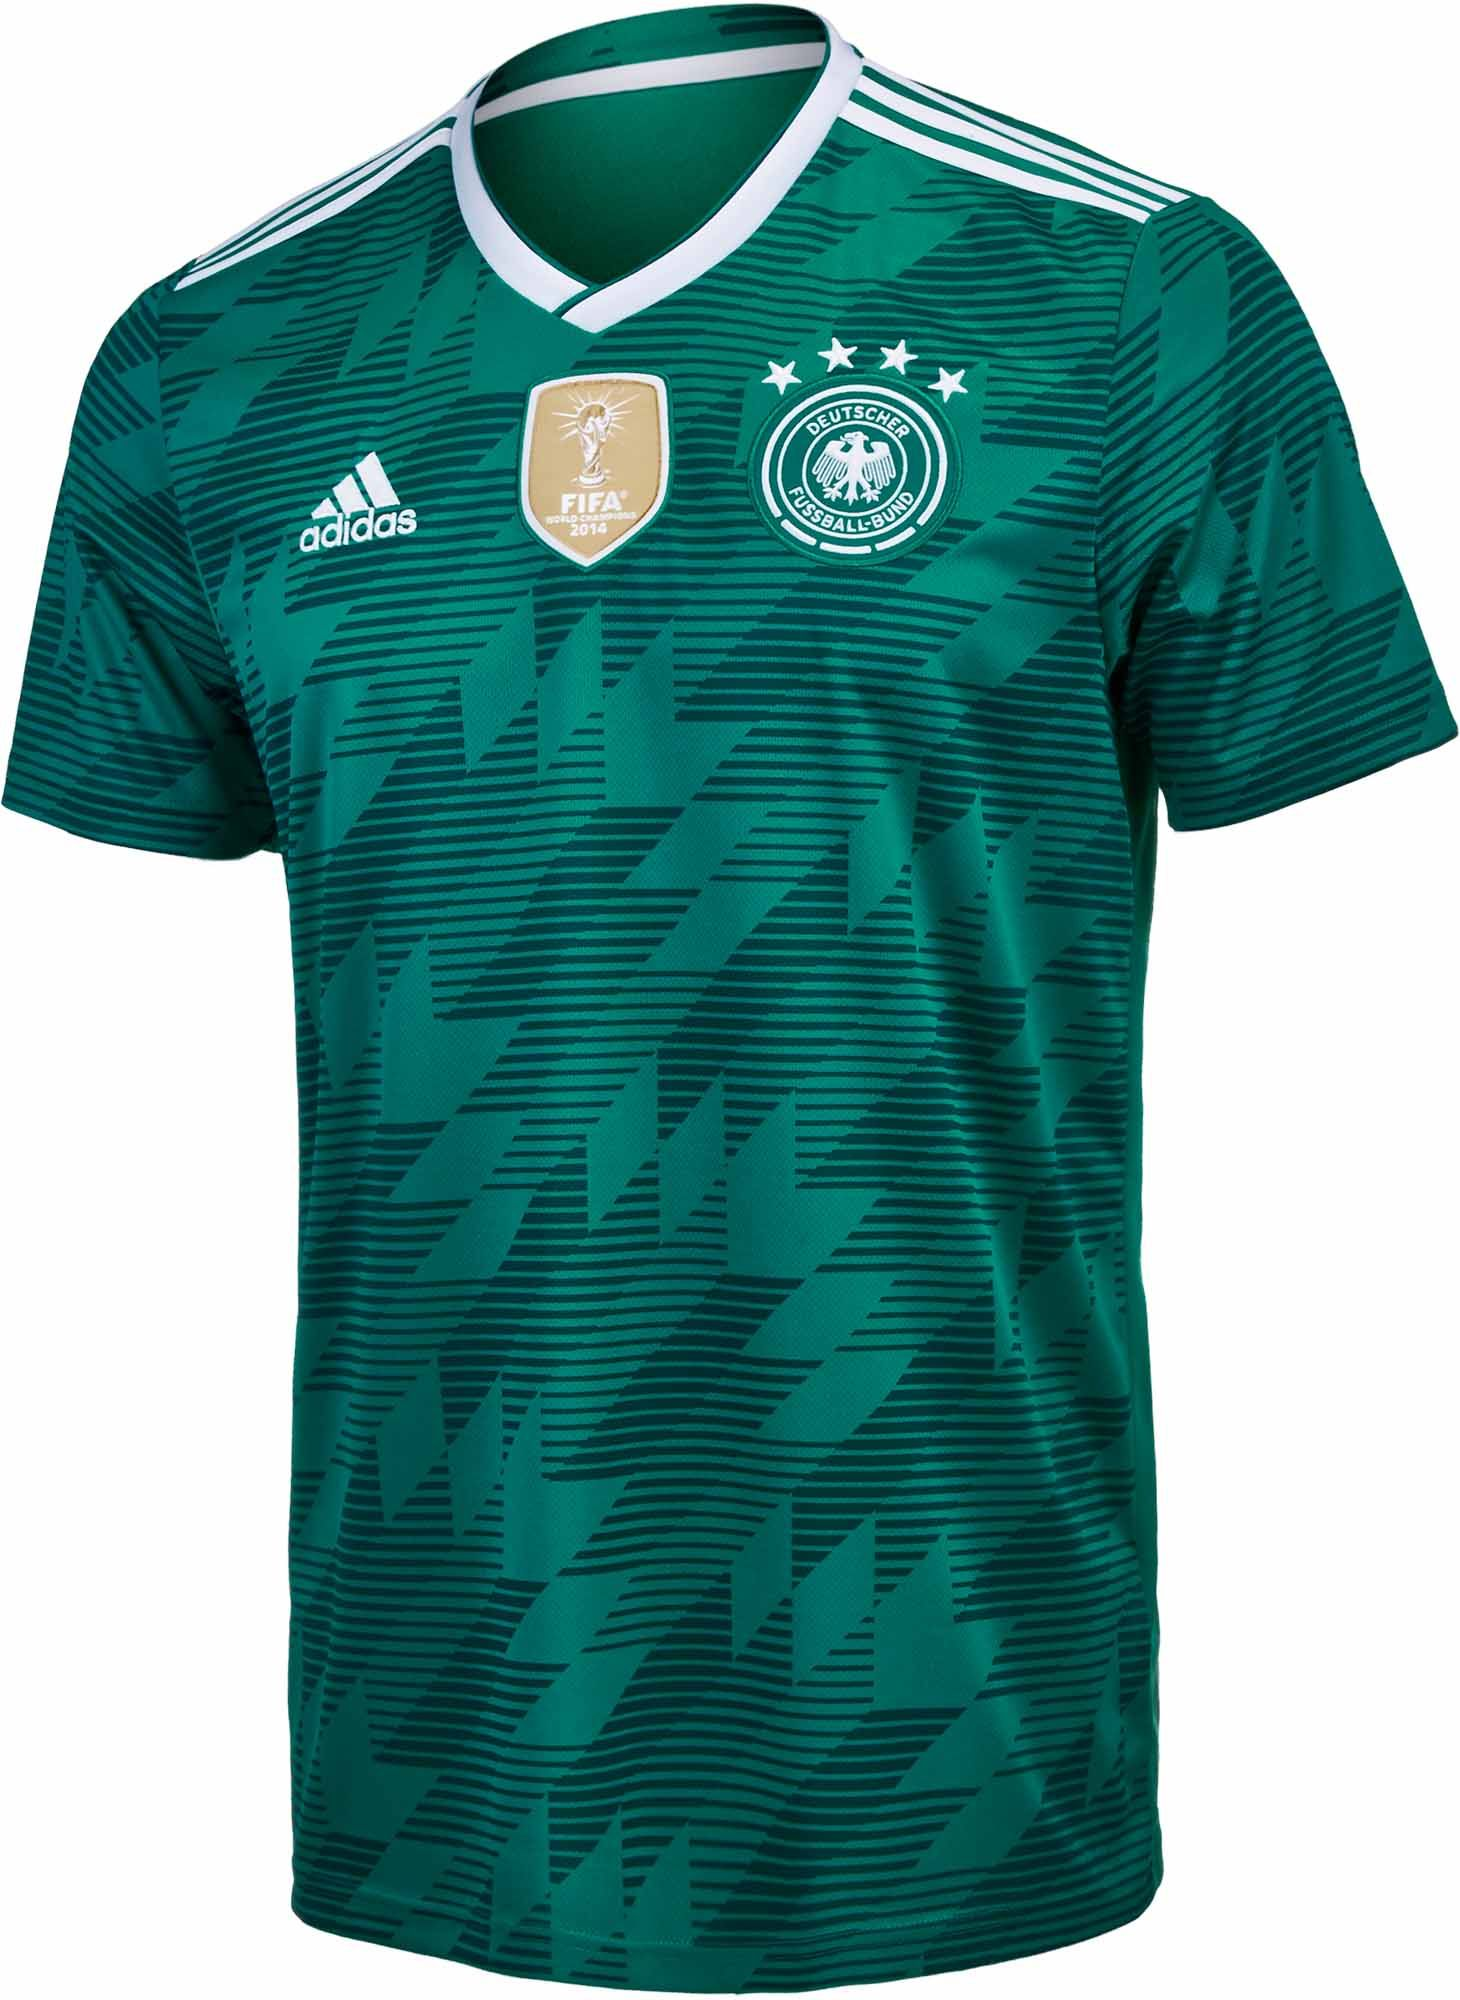 cdf32ae68 2018 19 adidas Kids Germany Away Jersey. Available now at SoccerPro.